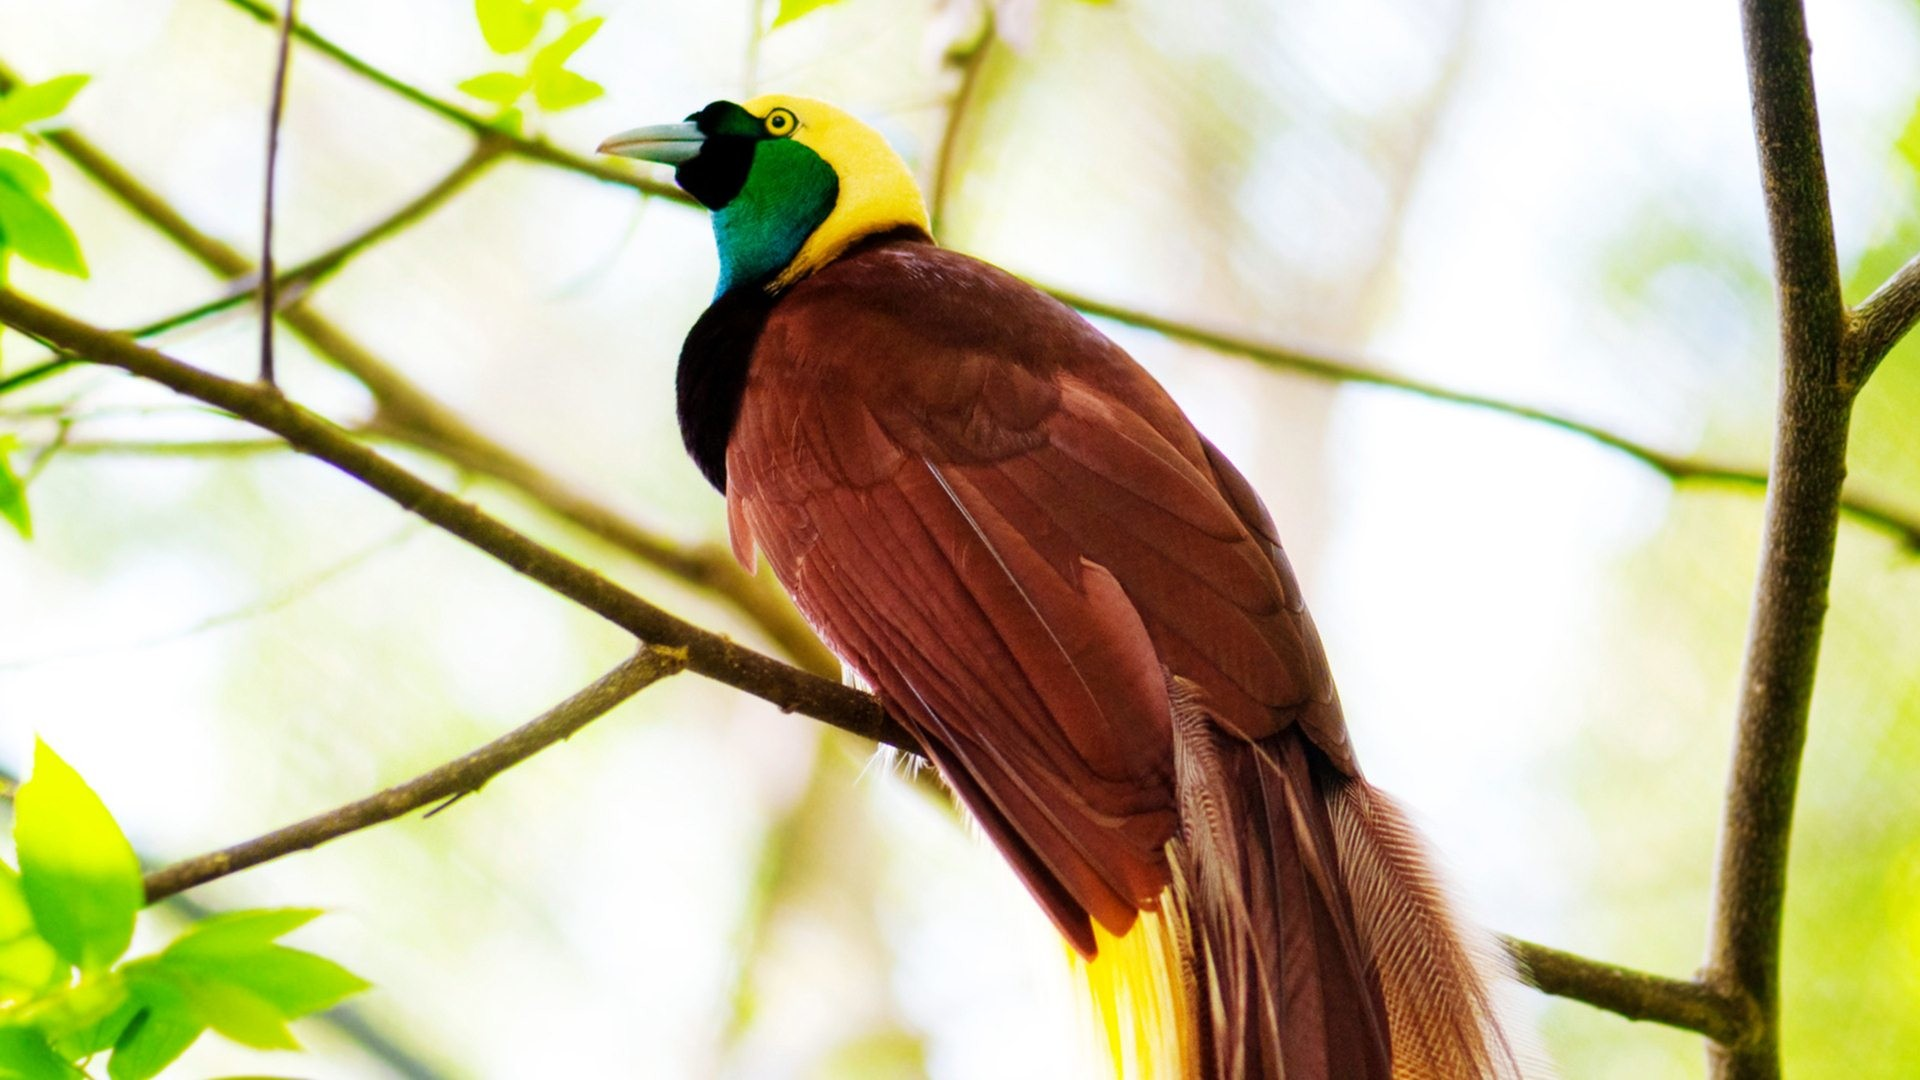 Bird of paradise wallpaper 60 images - Hd images of birds of paradise ...